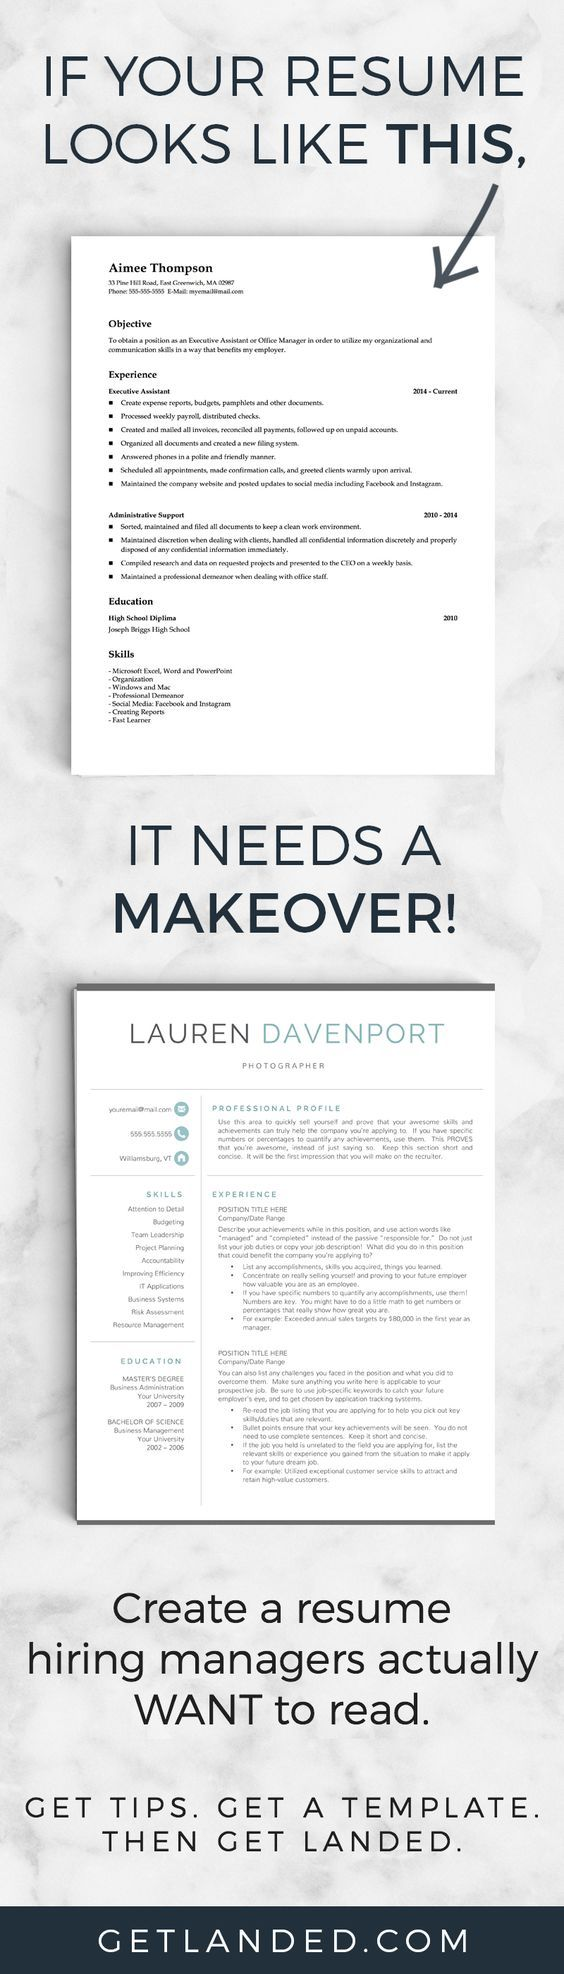 Cool 10 Best Resumes Tall 1930s Newspaper Template Flat 1st Job Resume Examples 2 Page Resume Design Youthful 2003 Word Templates Dark2014 2015 Academic Calendar Template 25  Best Ideas About Resume Writing On Pinterest | Resume, Resume ..